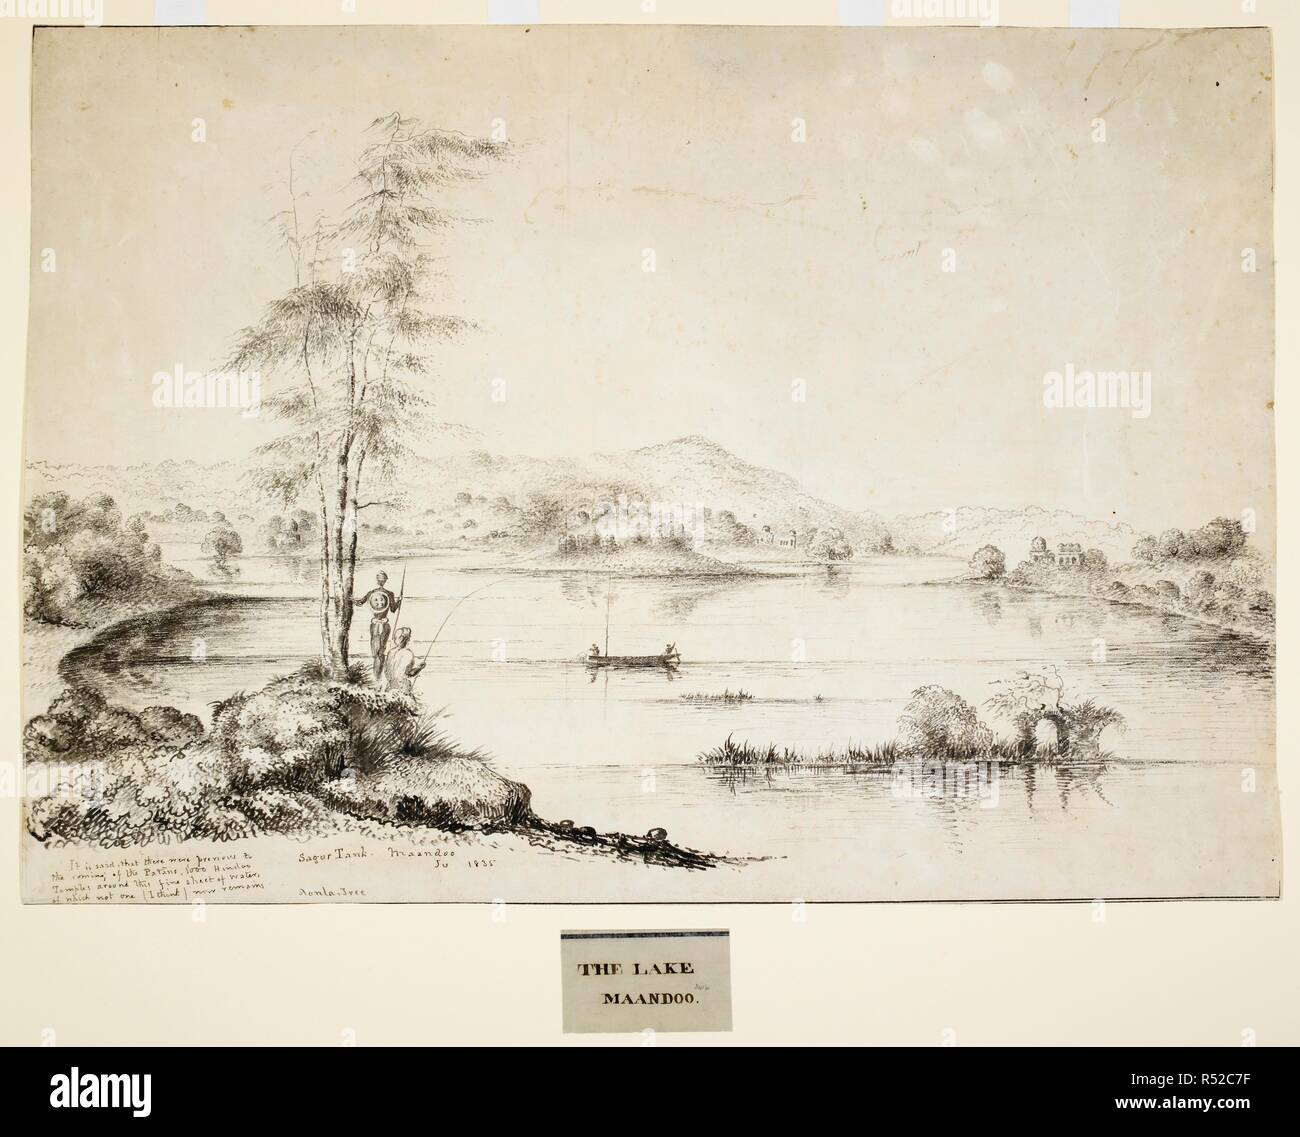 'Sagur Tank Maandoo. Ju. 1835. Aonla Tree. It is said that there were previous to the coming of the Patans, 1000 Hindoo Temples around this fine sheet of water, of which not one (I think) now remains'. 1835. pencil; ink. Source: WD 3416. Language: English. Author: ABOTT, JAMES. - Stock Image